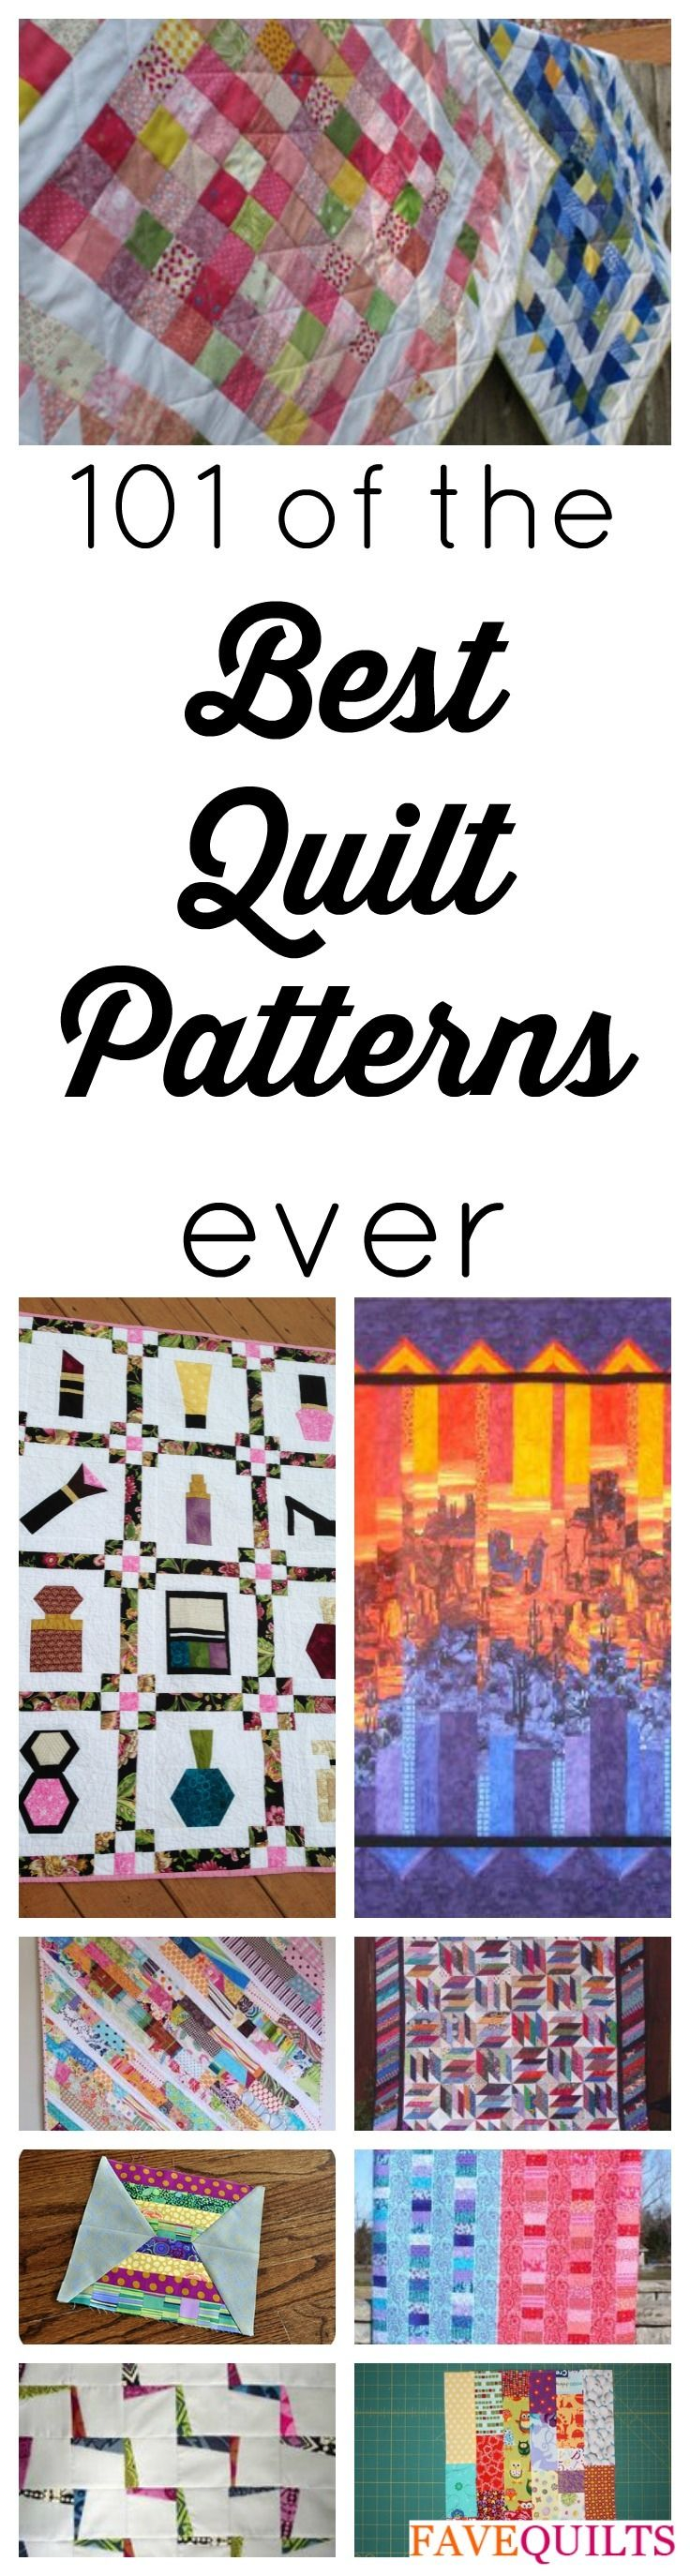 101 Best Quilt Patterns for Free: Quilt Block Patterns, Quilt Patterns for Baby, and More | These free quilt patterns are must-haves for quilting fans!